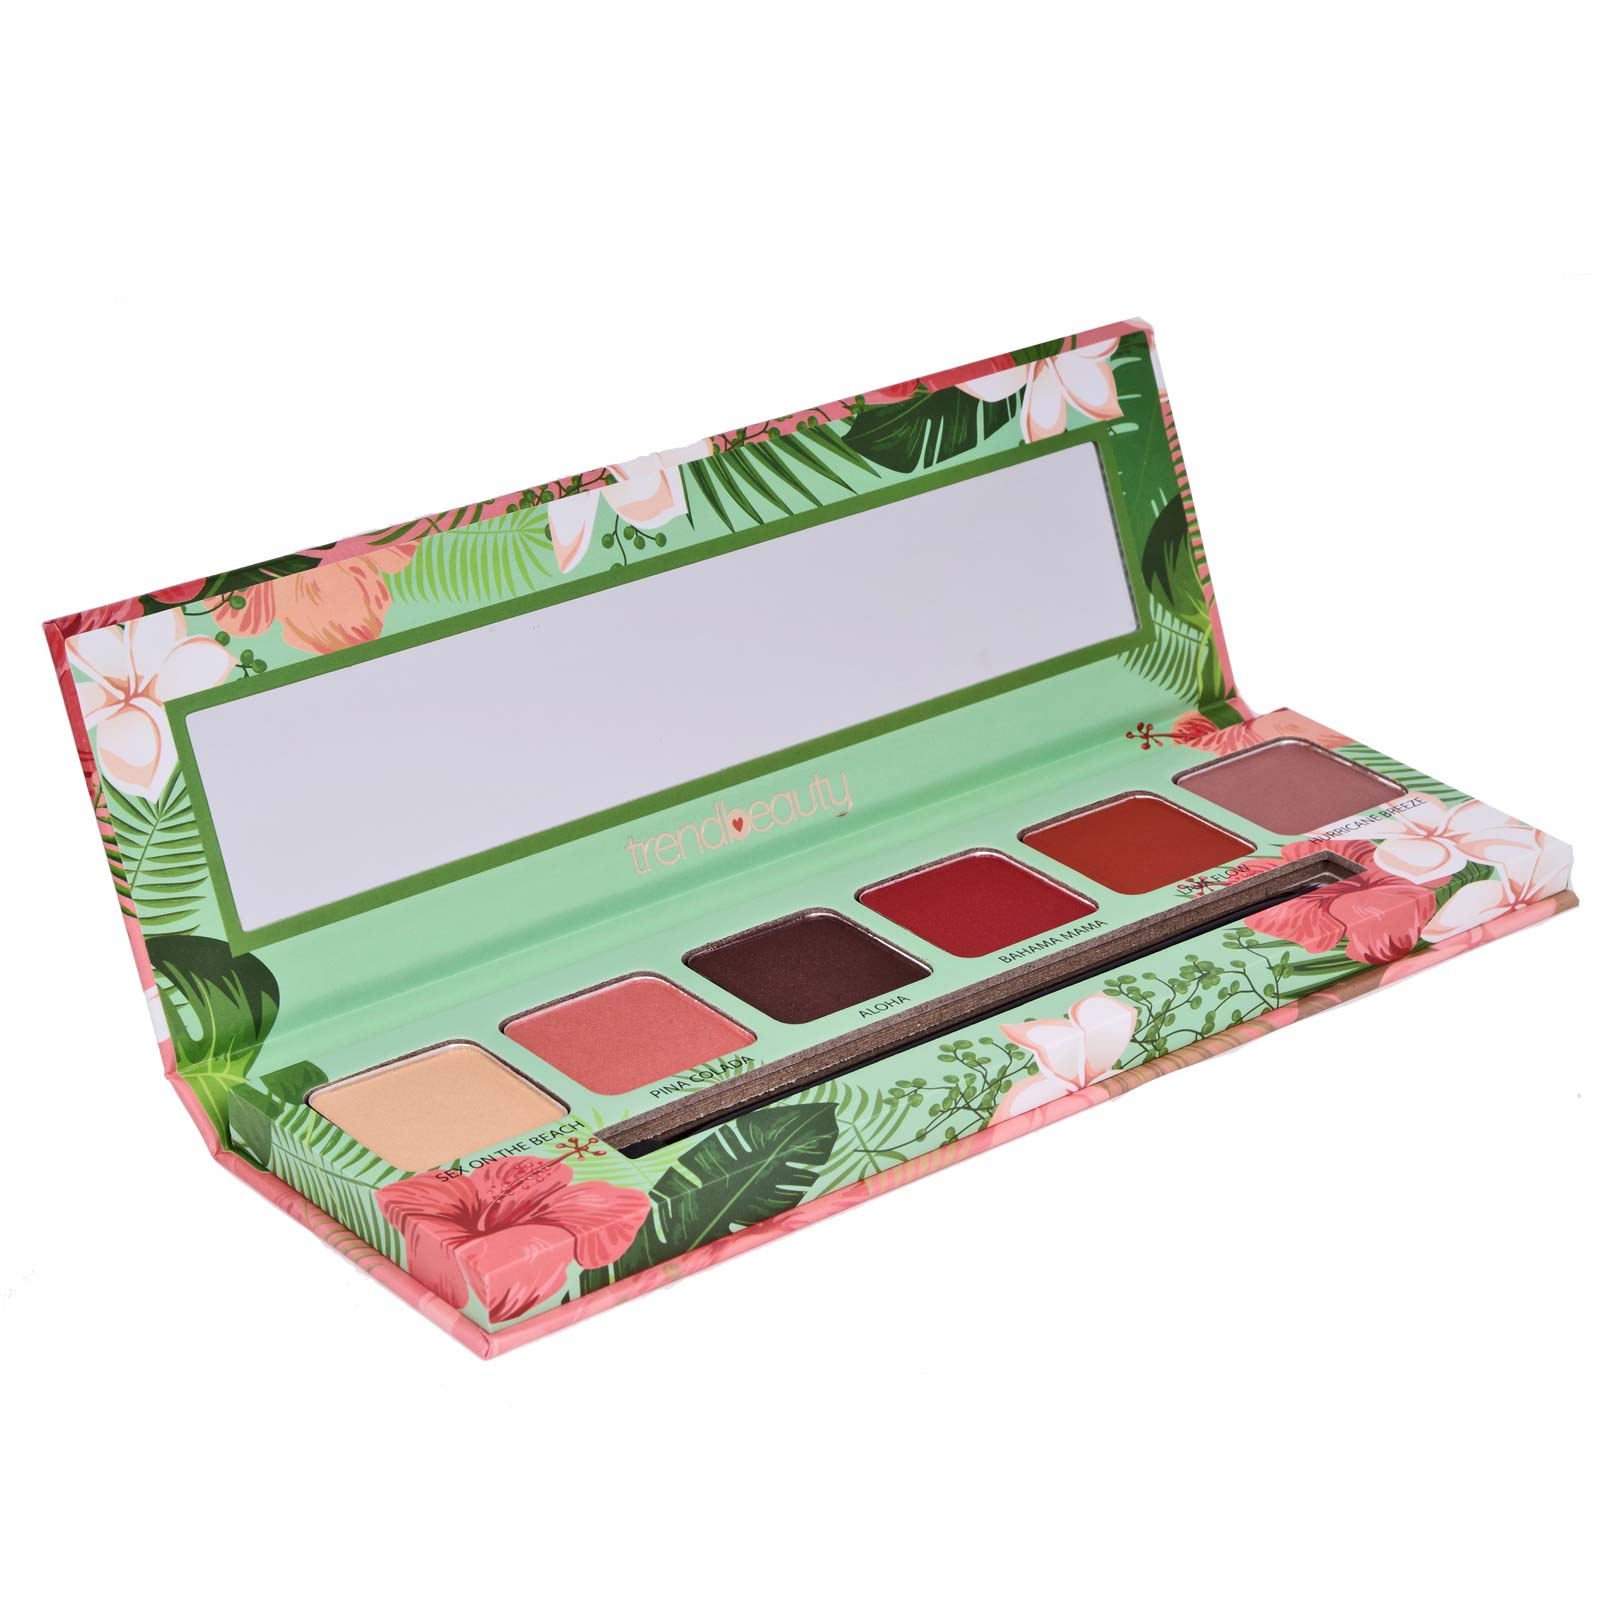 Trend Beauty, TBE6A, Tropical Vibes Eyeshadow  - A mixture of buttery mattes and pigmented shimmers (6/cs)